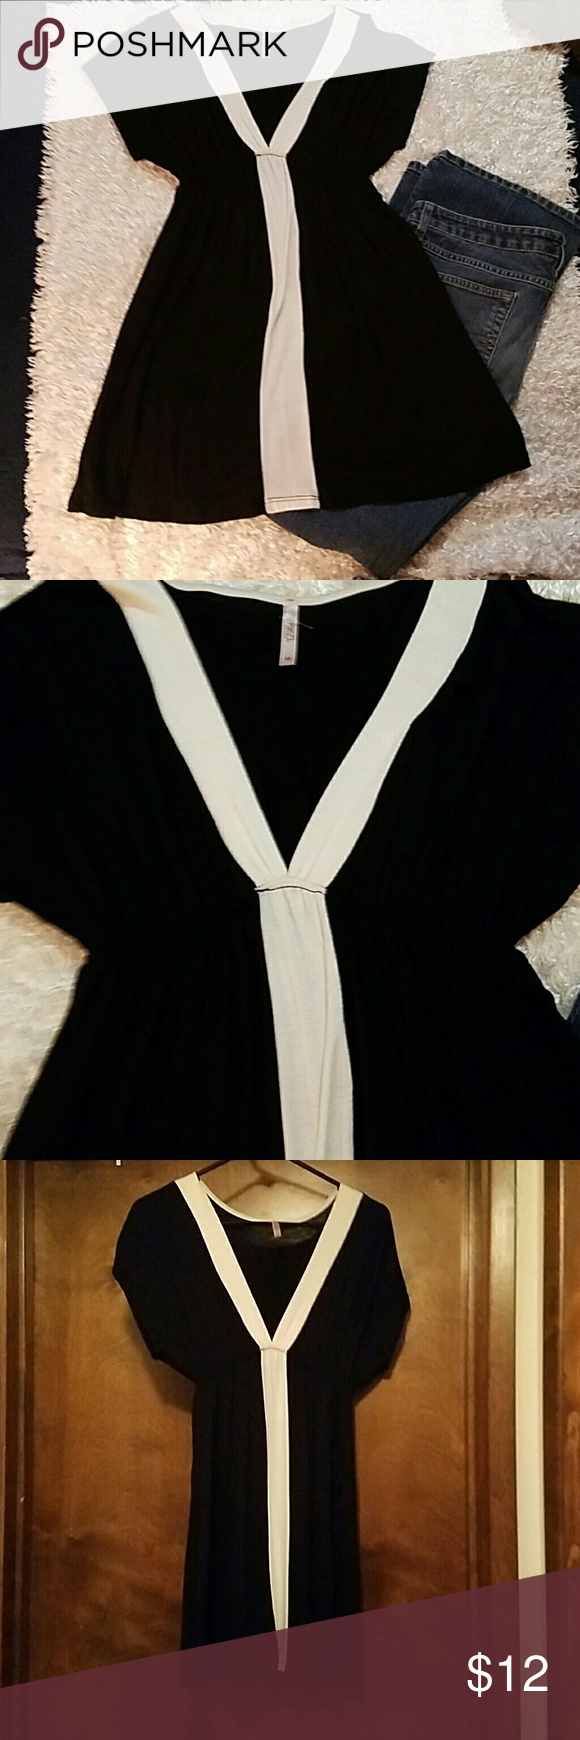 Rue 21 Women's long blouse NWOT-Super cute longer shirt. Can be worn w/ jeans or leggings. Can even be worn as a dress. Never worn Rue 21 Tops Blouses